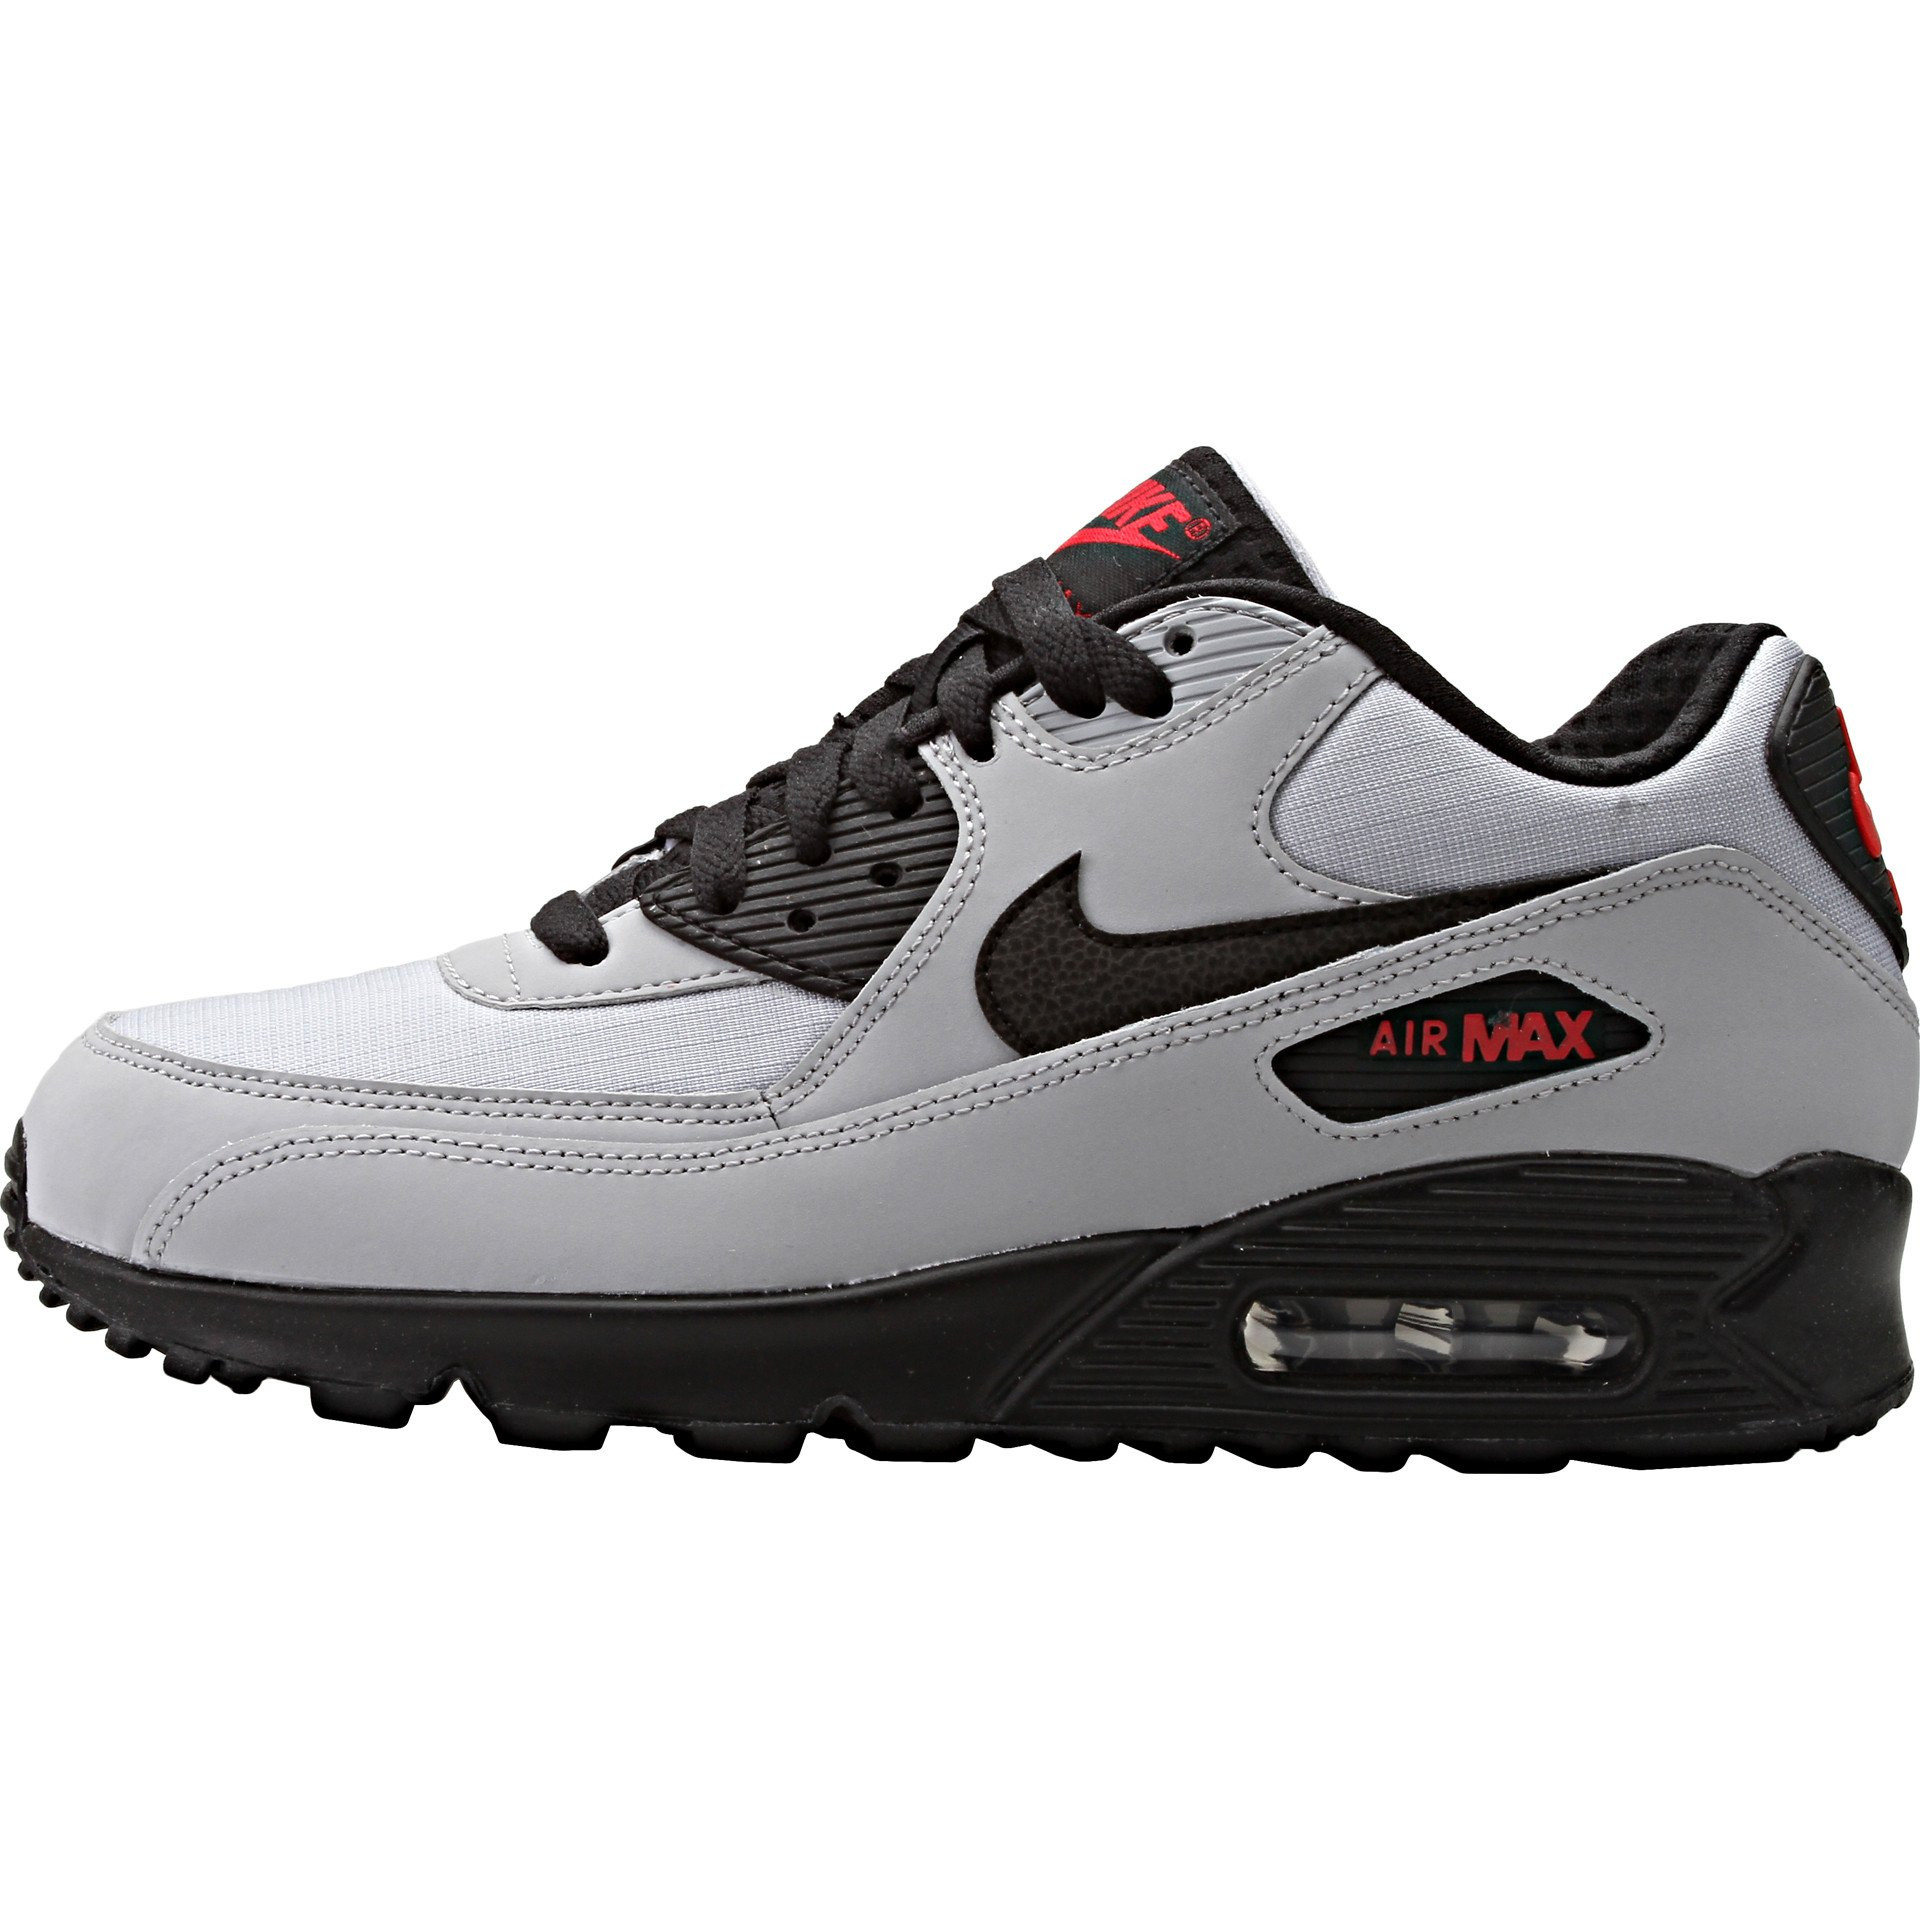 Air Max 90 Essential Encantador Nike Air Max 90 Essential Grey Black Red Lanarkunitedfc Of 36  Adorable Air Max 90 Essential